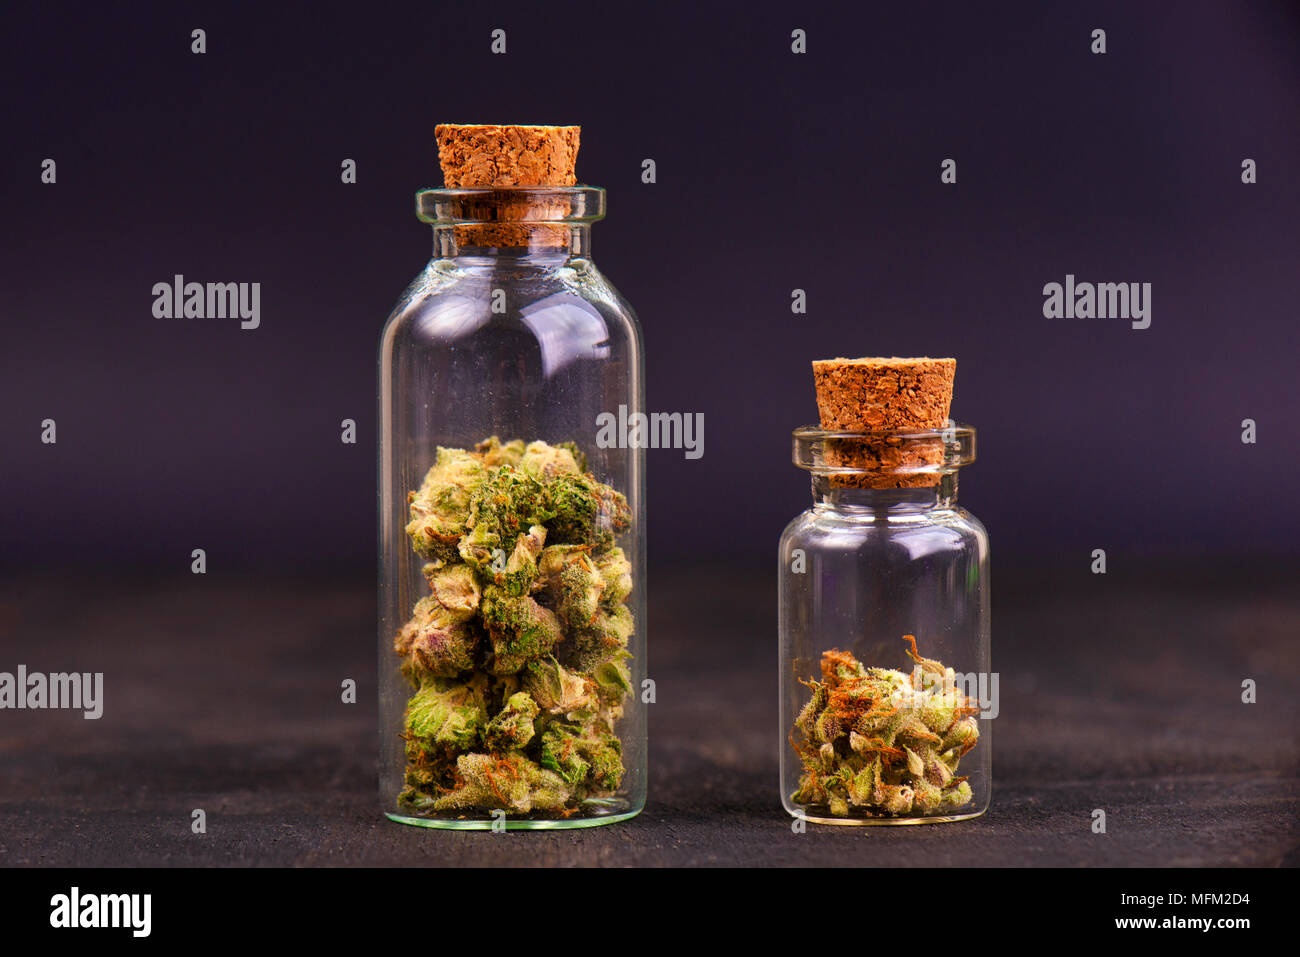 Detail of assorted jars with cannabis calyxes (sour tangie strain) isolated on black background - Medical marijuana dispensary concept Stock Photo